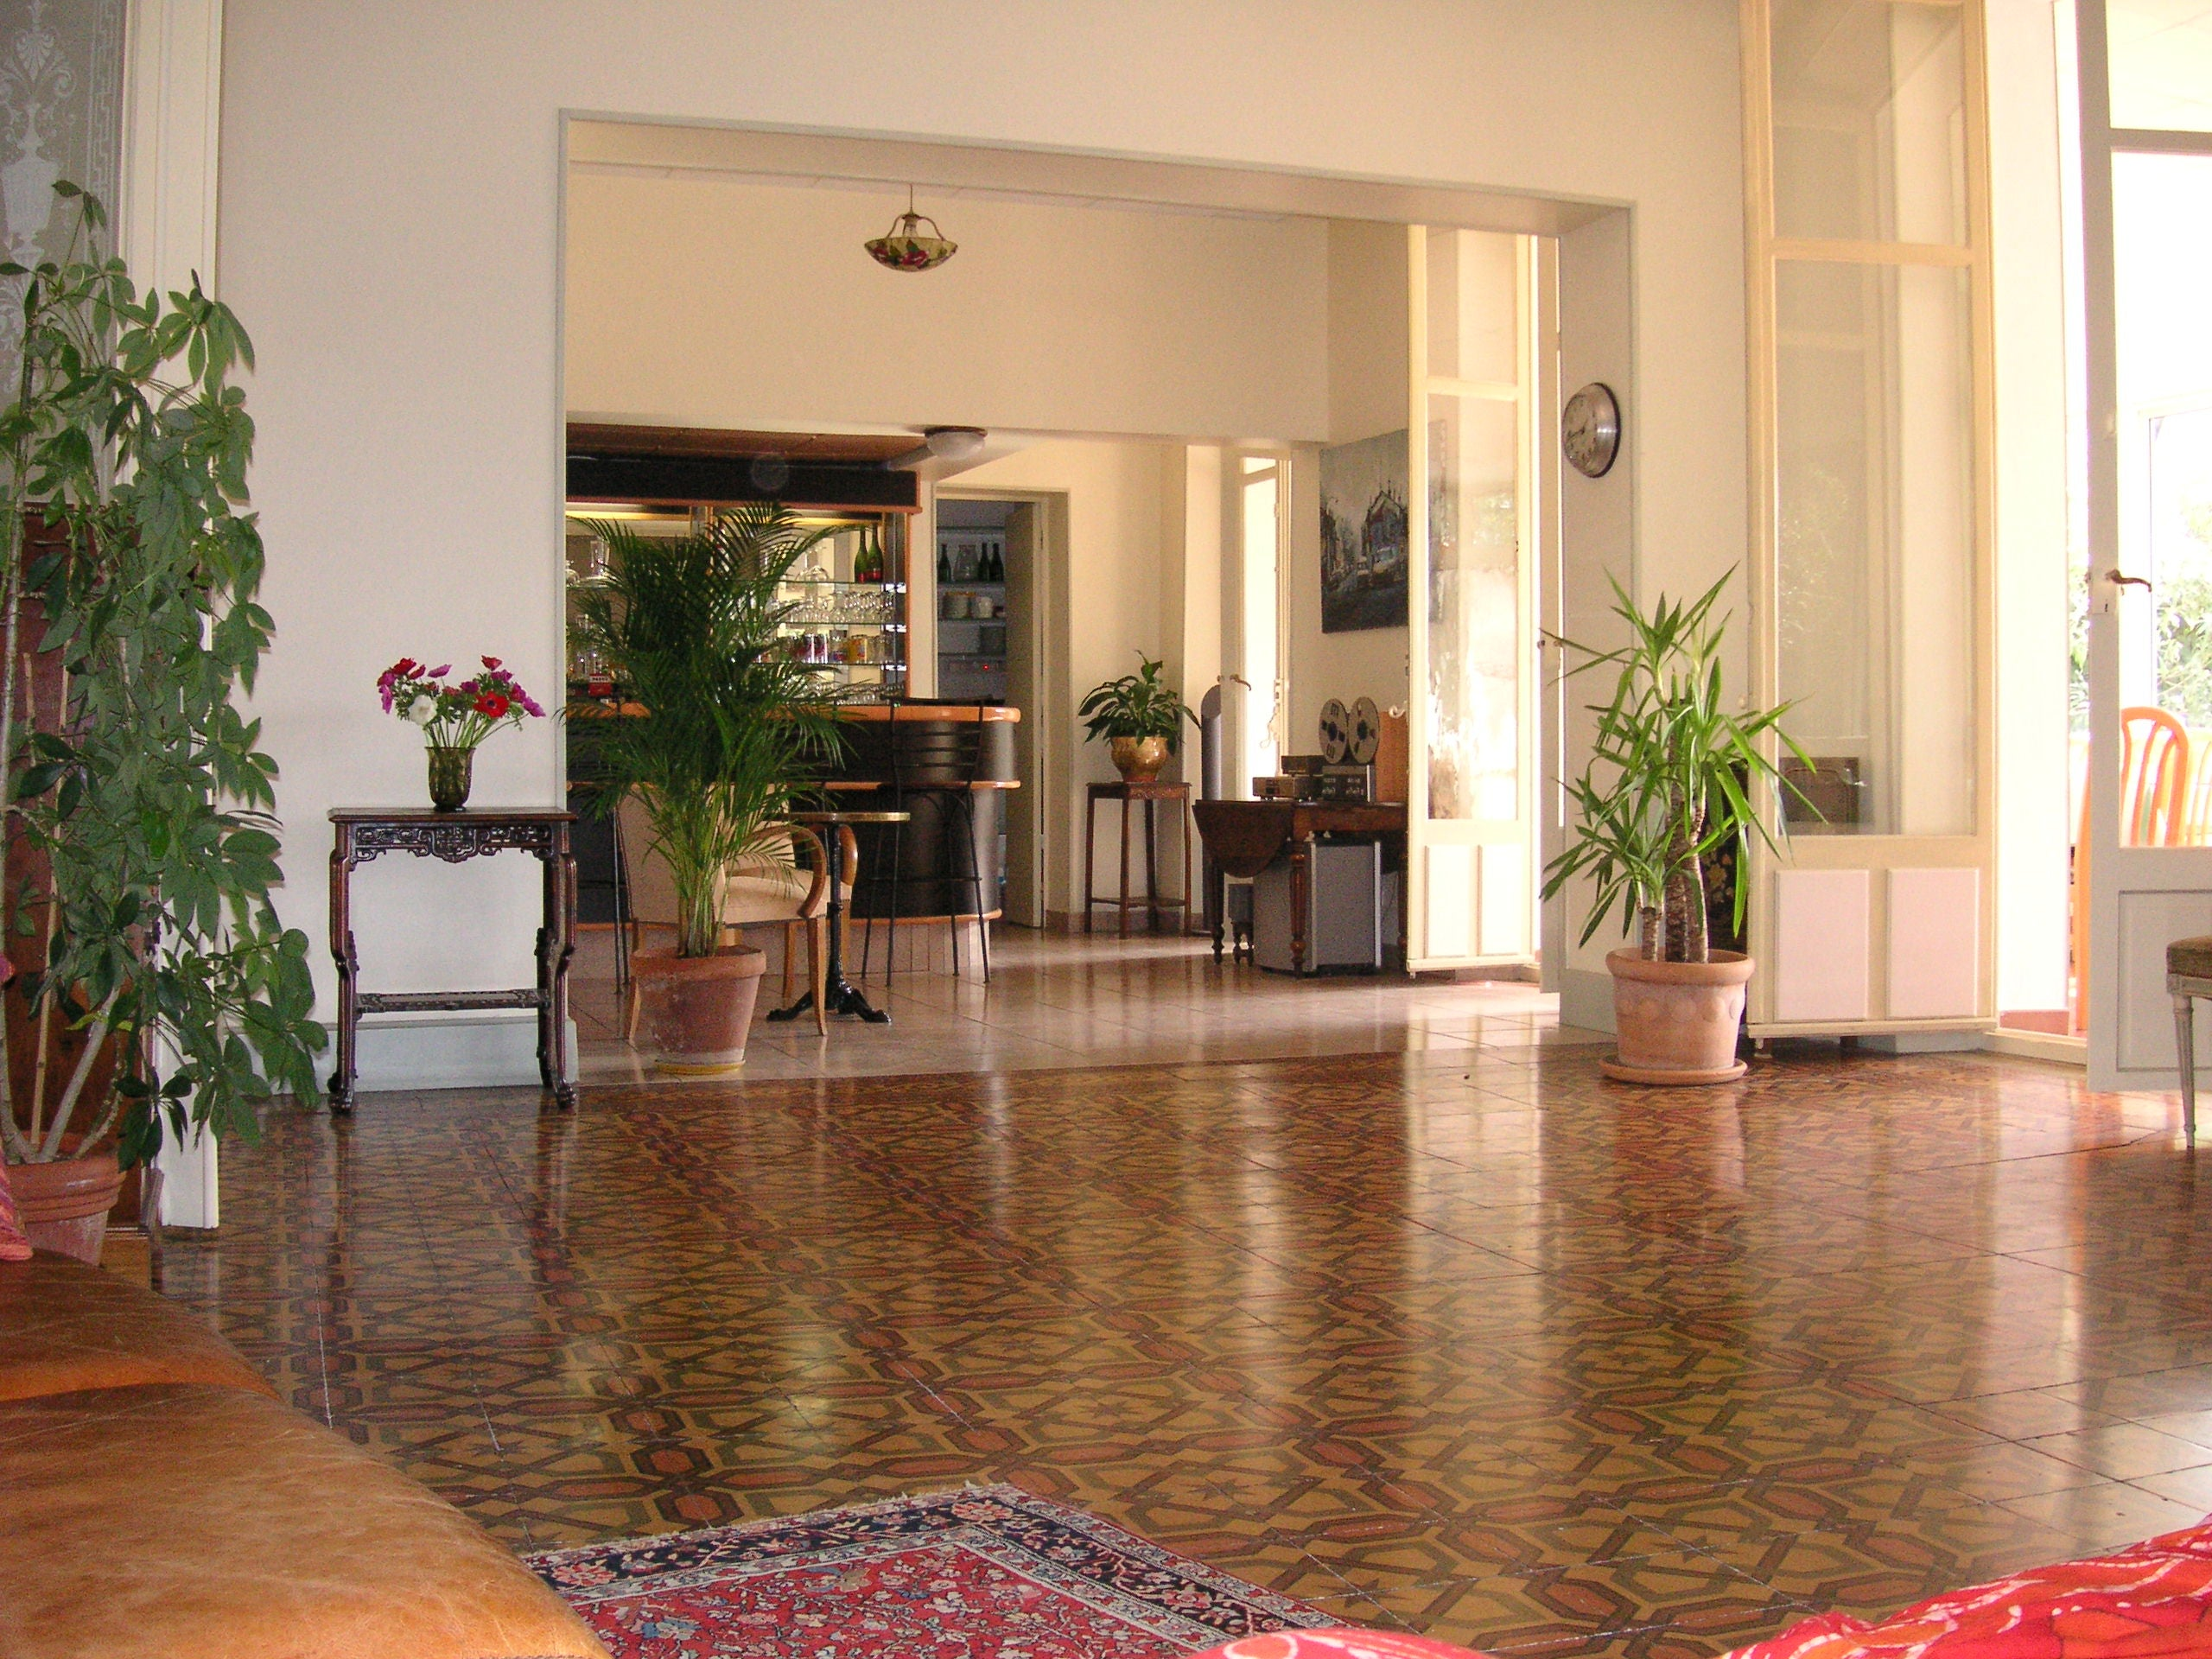 Lobby in Draguignan